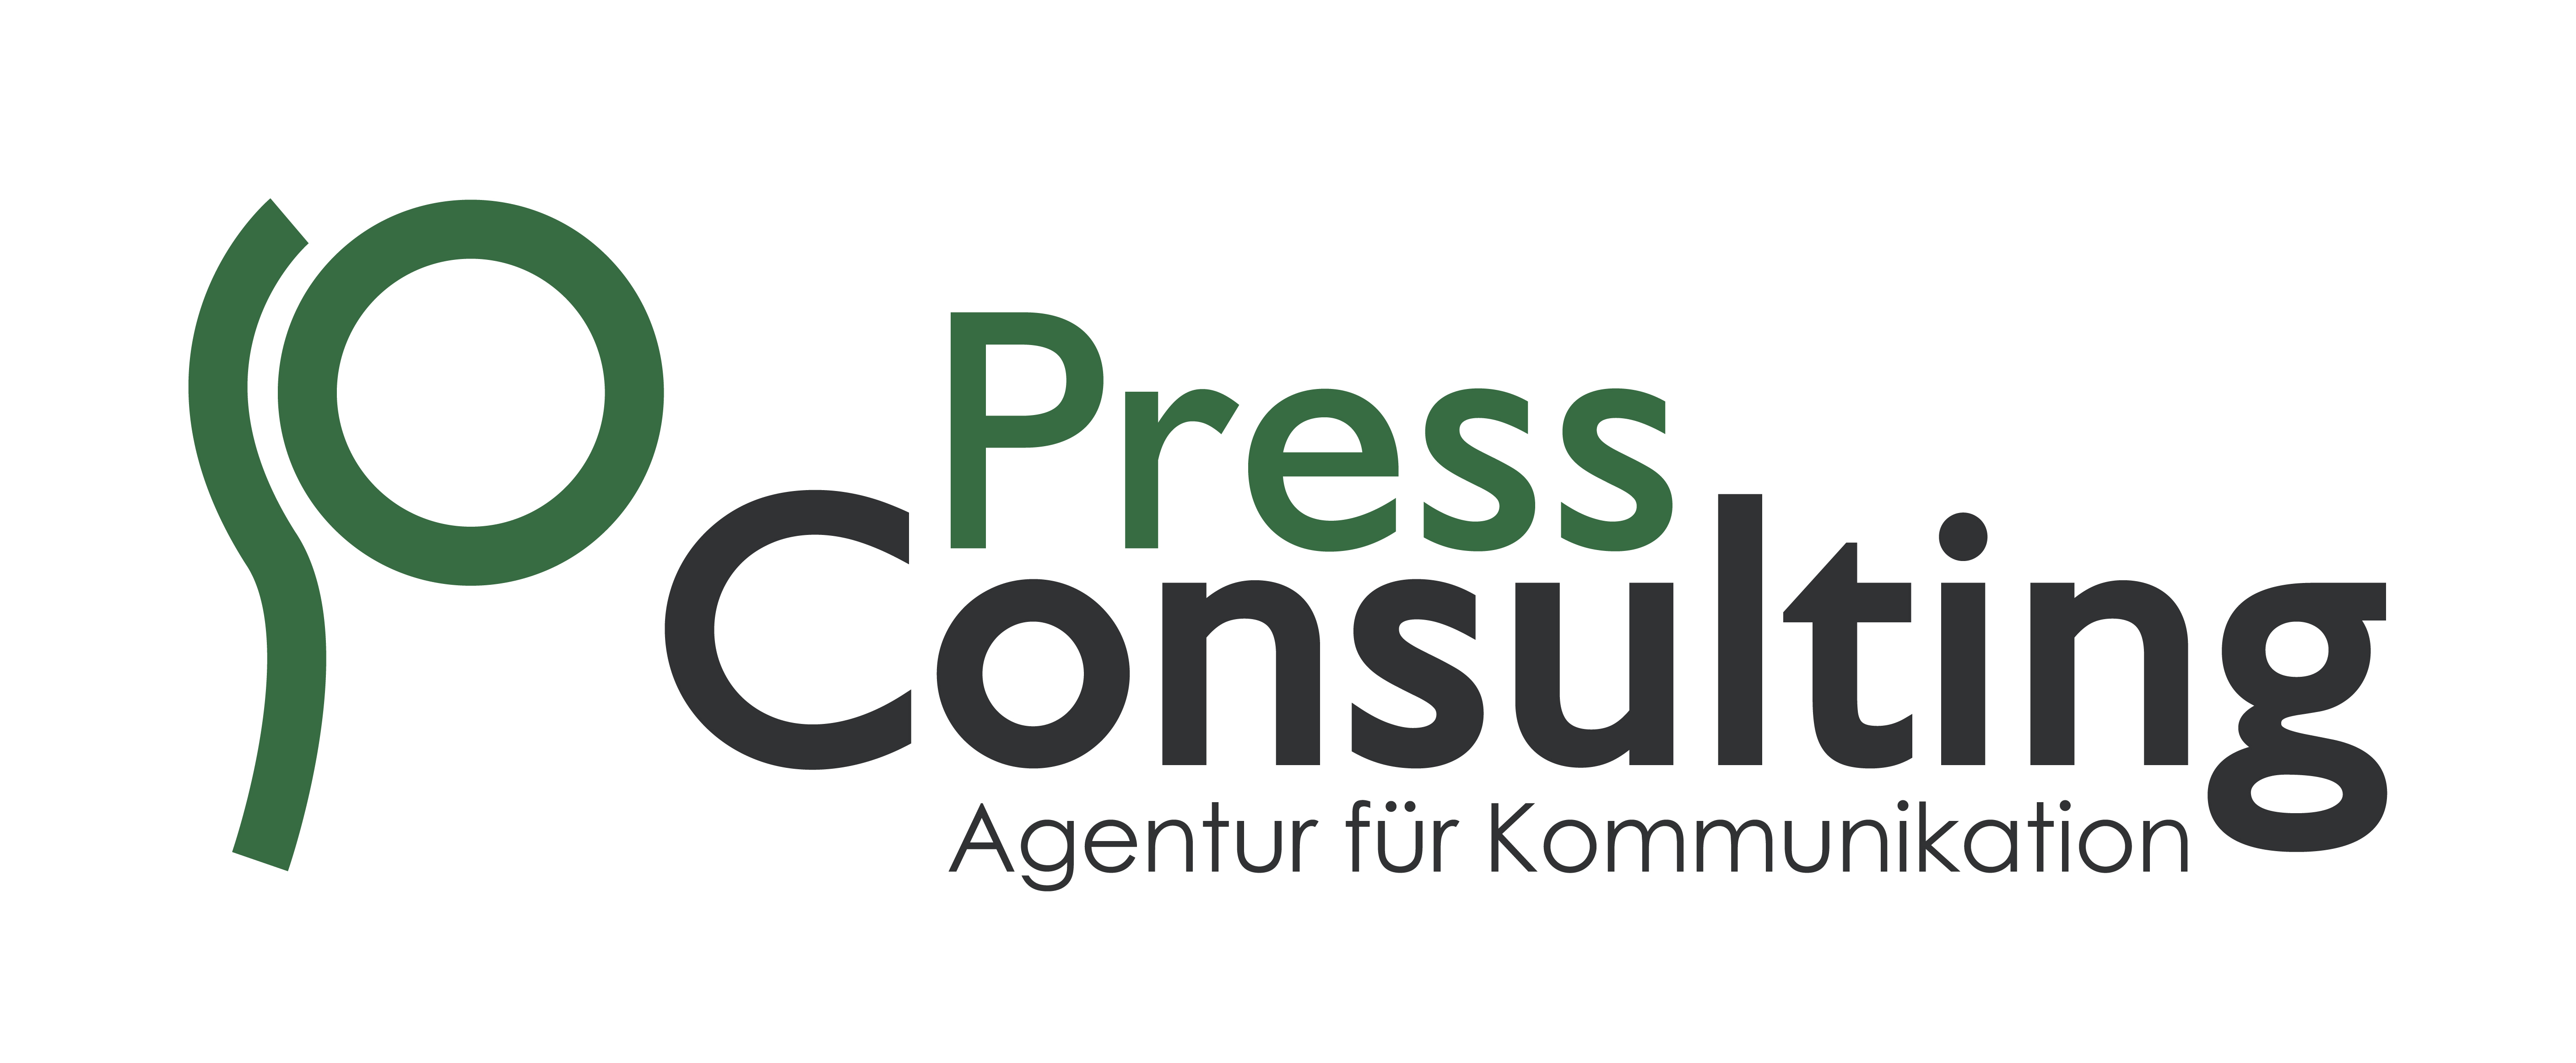 KP PressConsulting GmbH